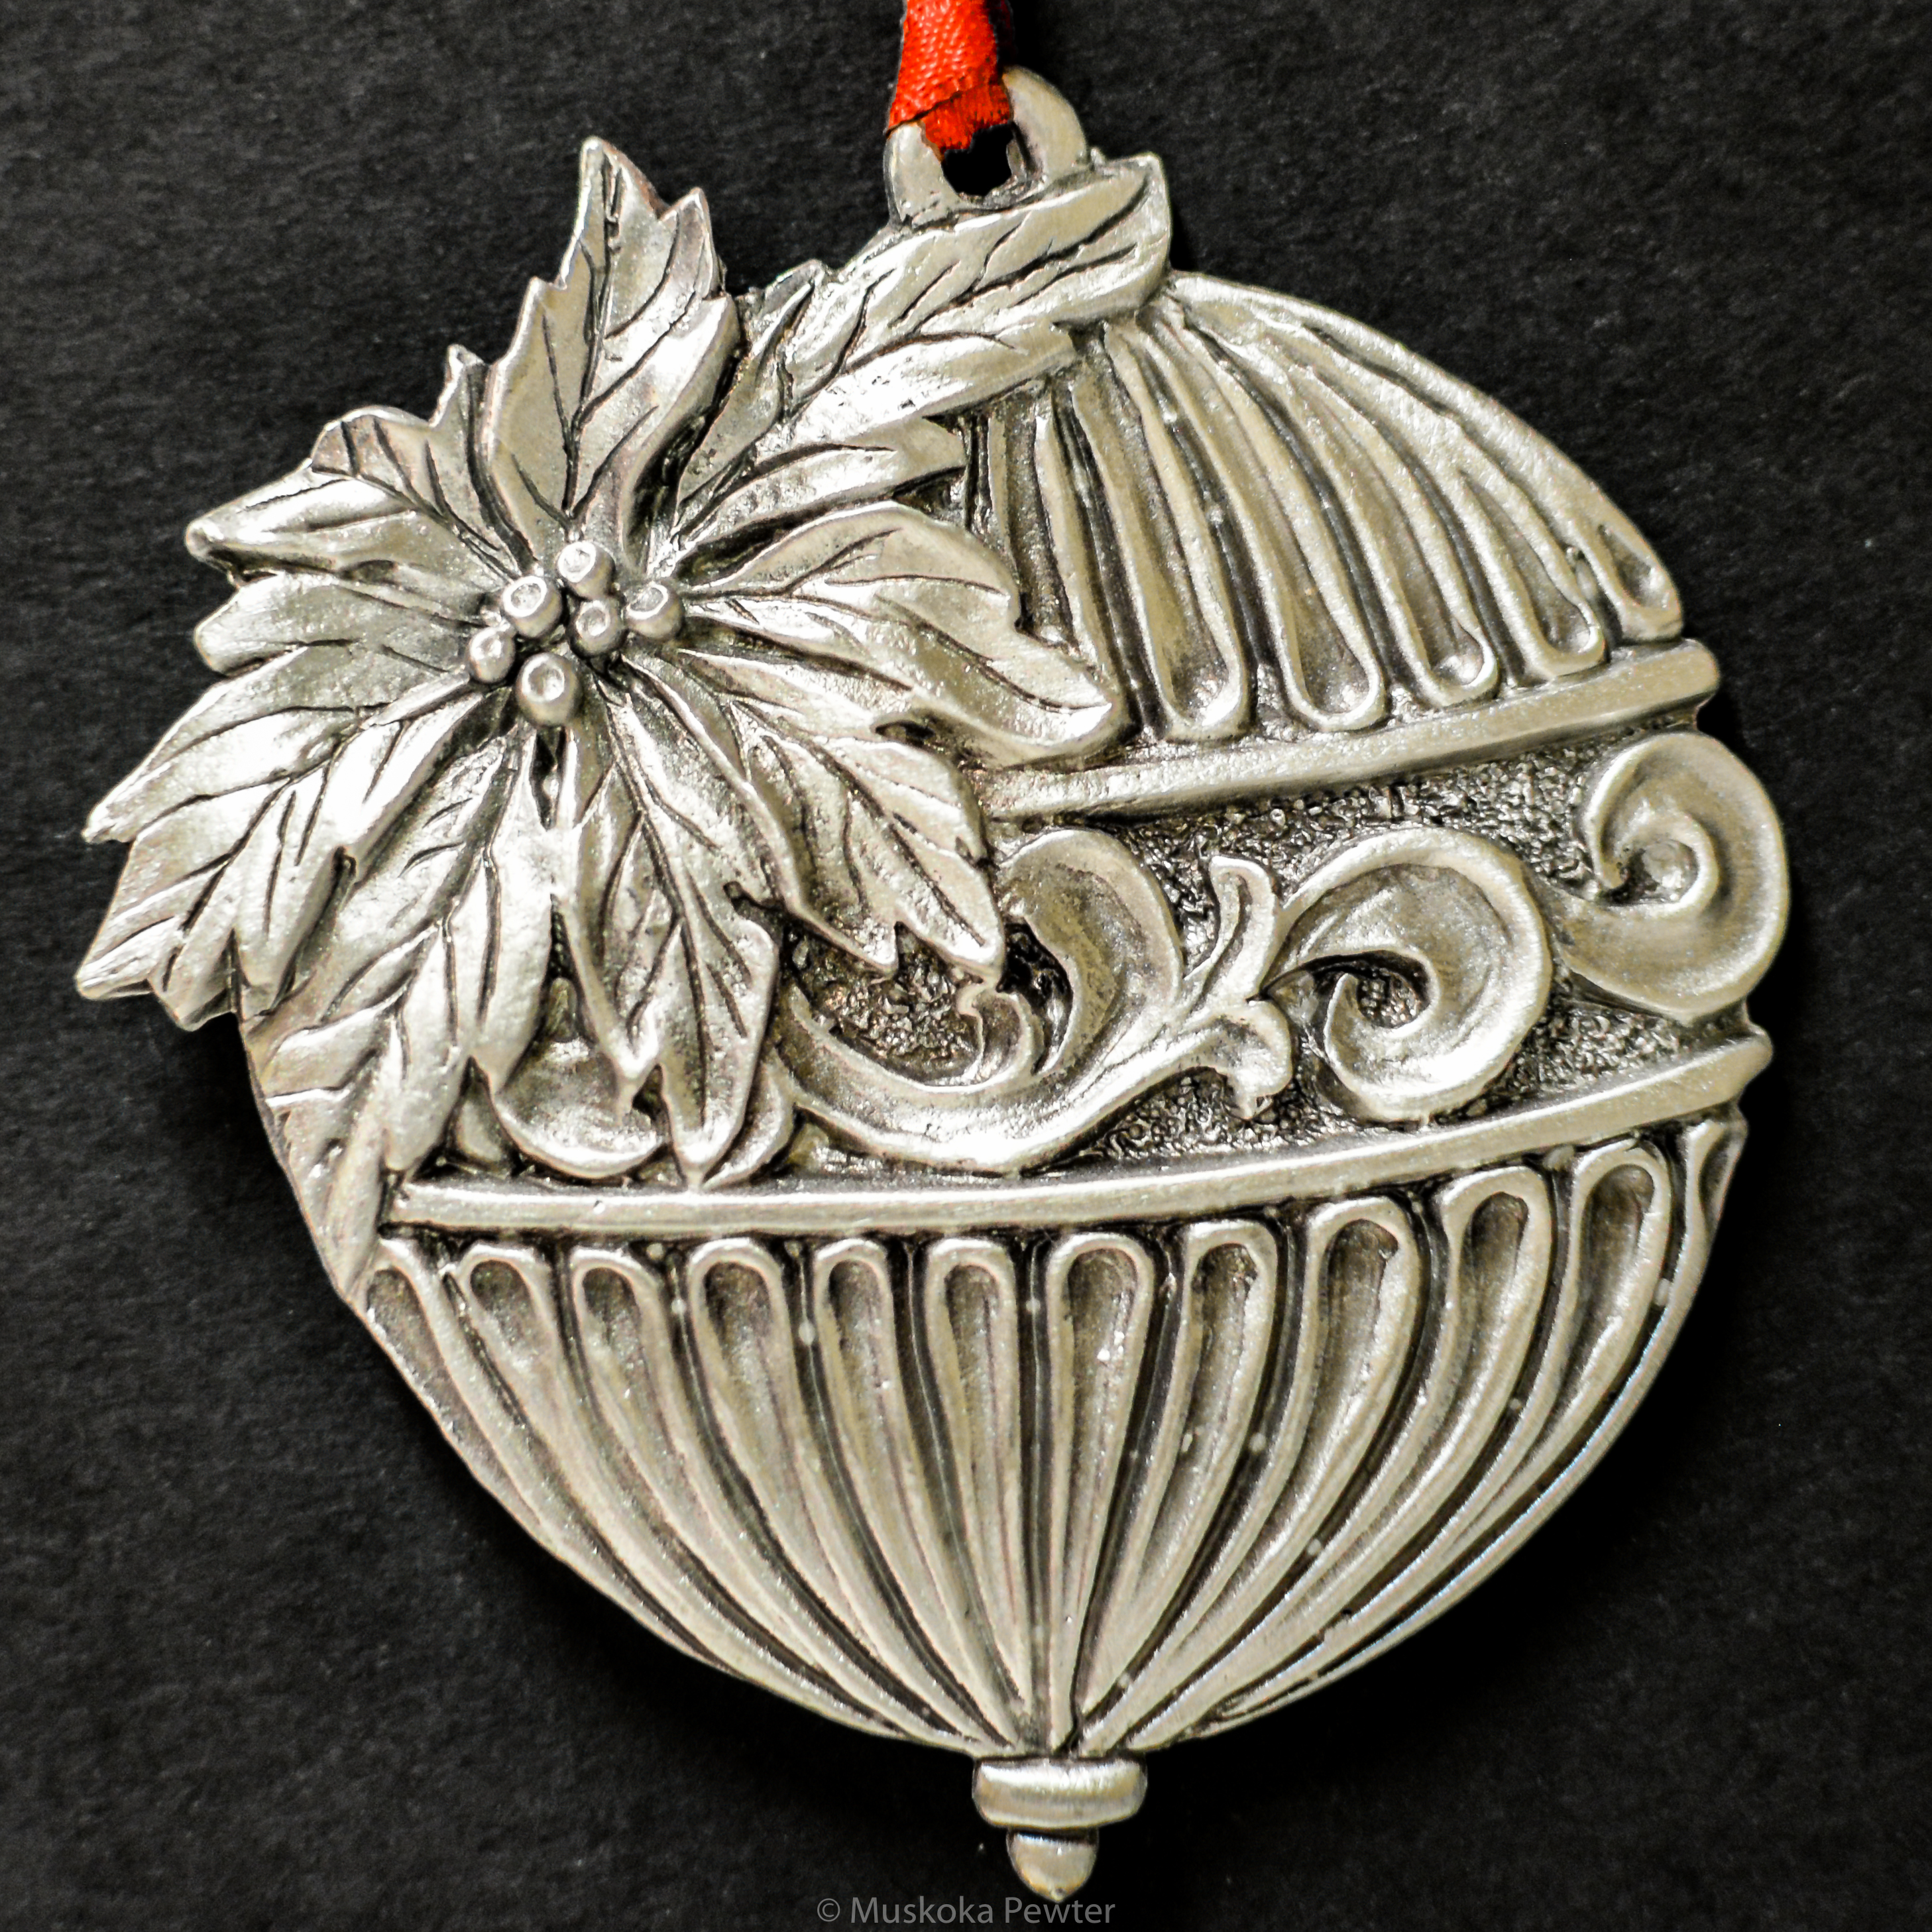 Muskoka pewter online shop for ornaments jewelry